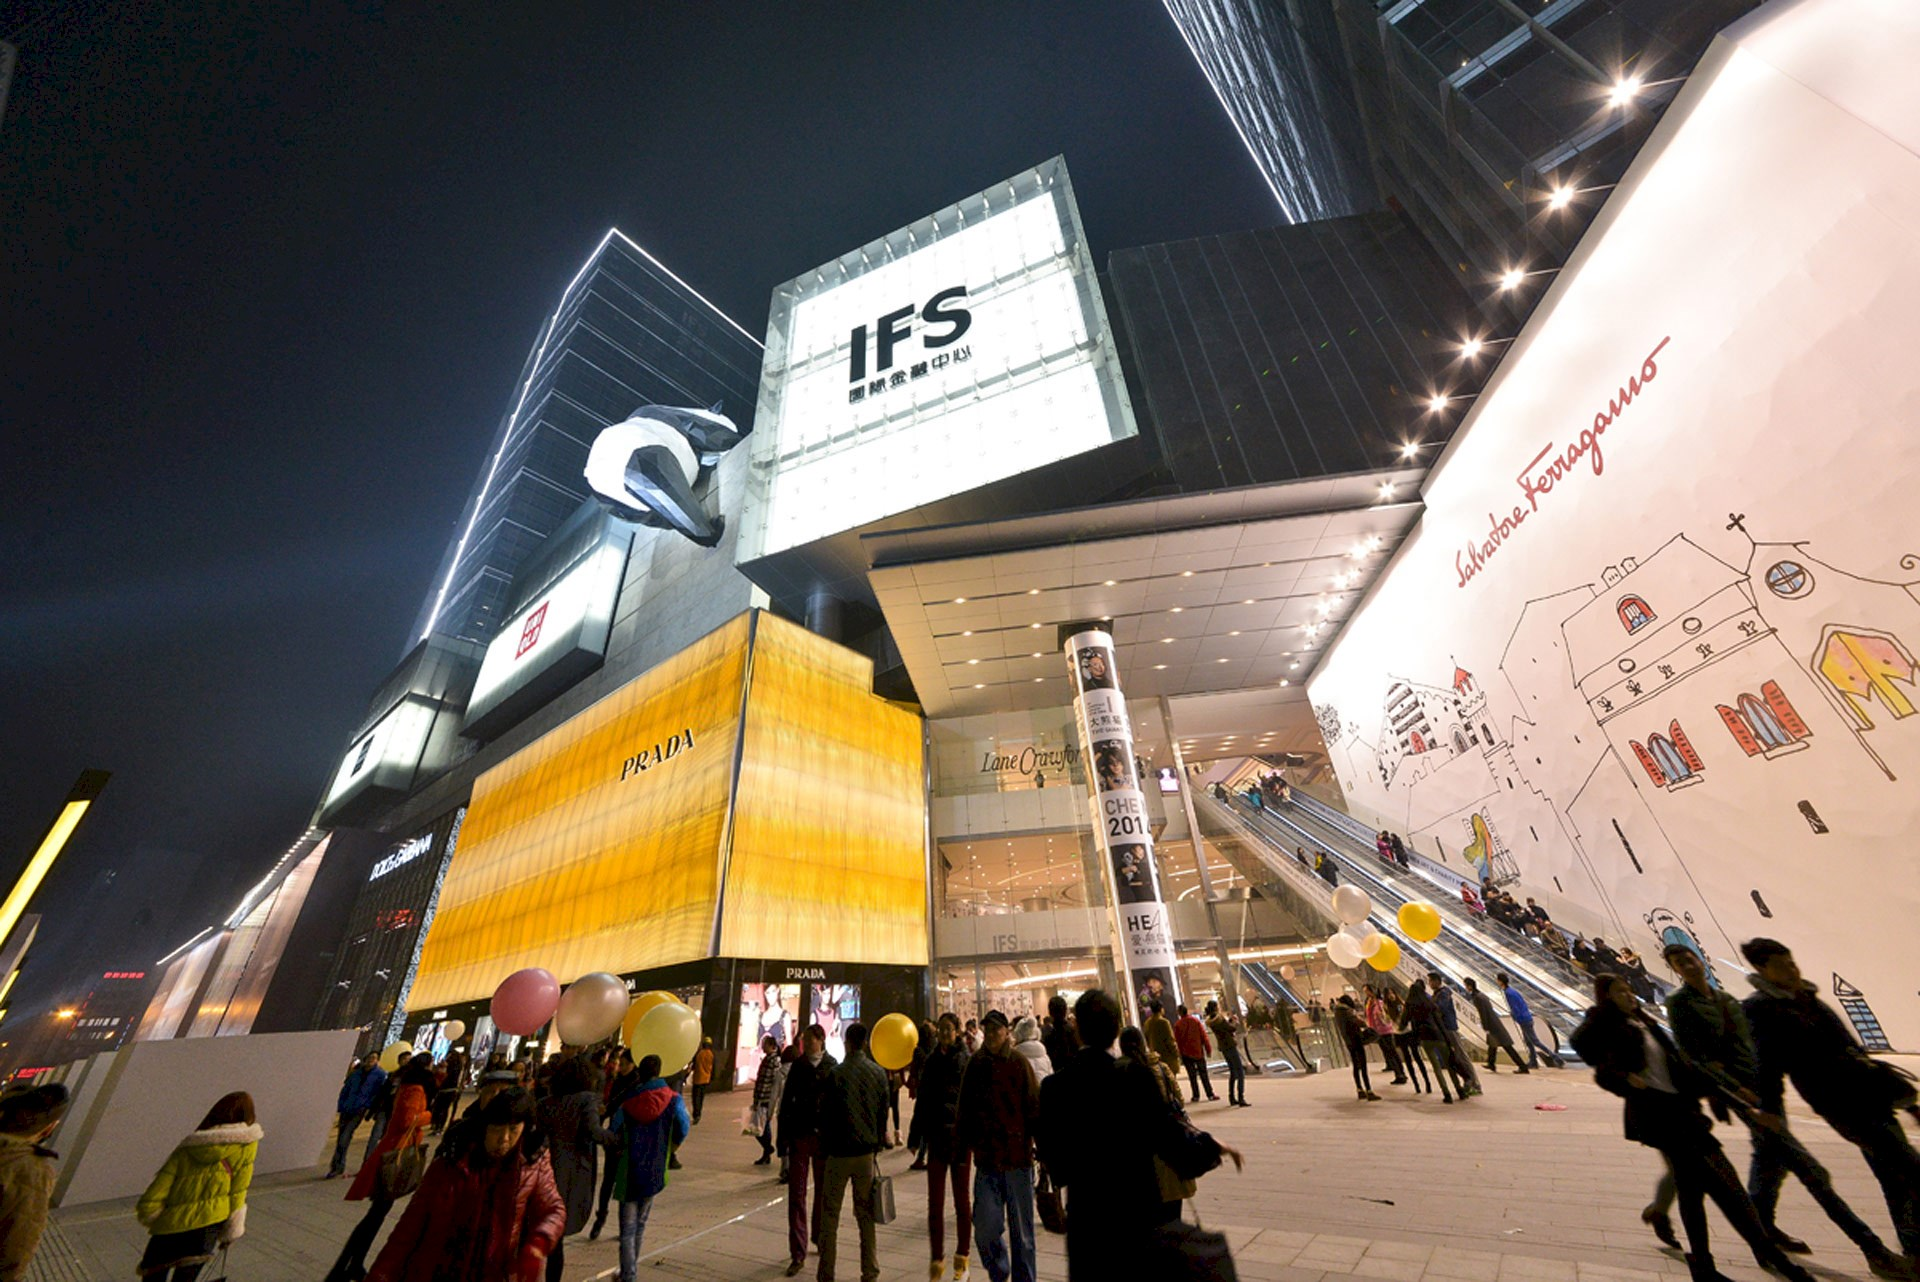 Chengdu IFS Launches in 2014